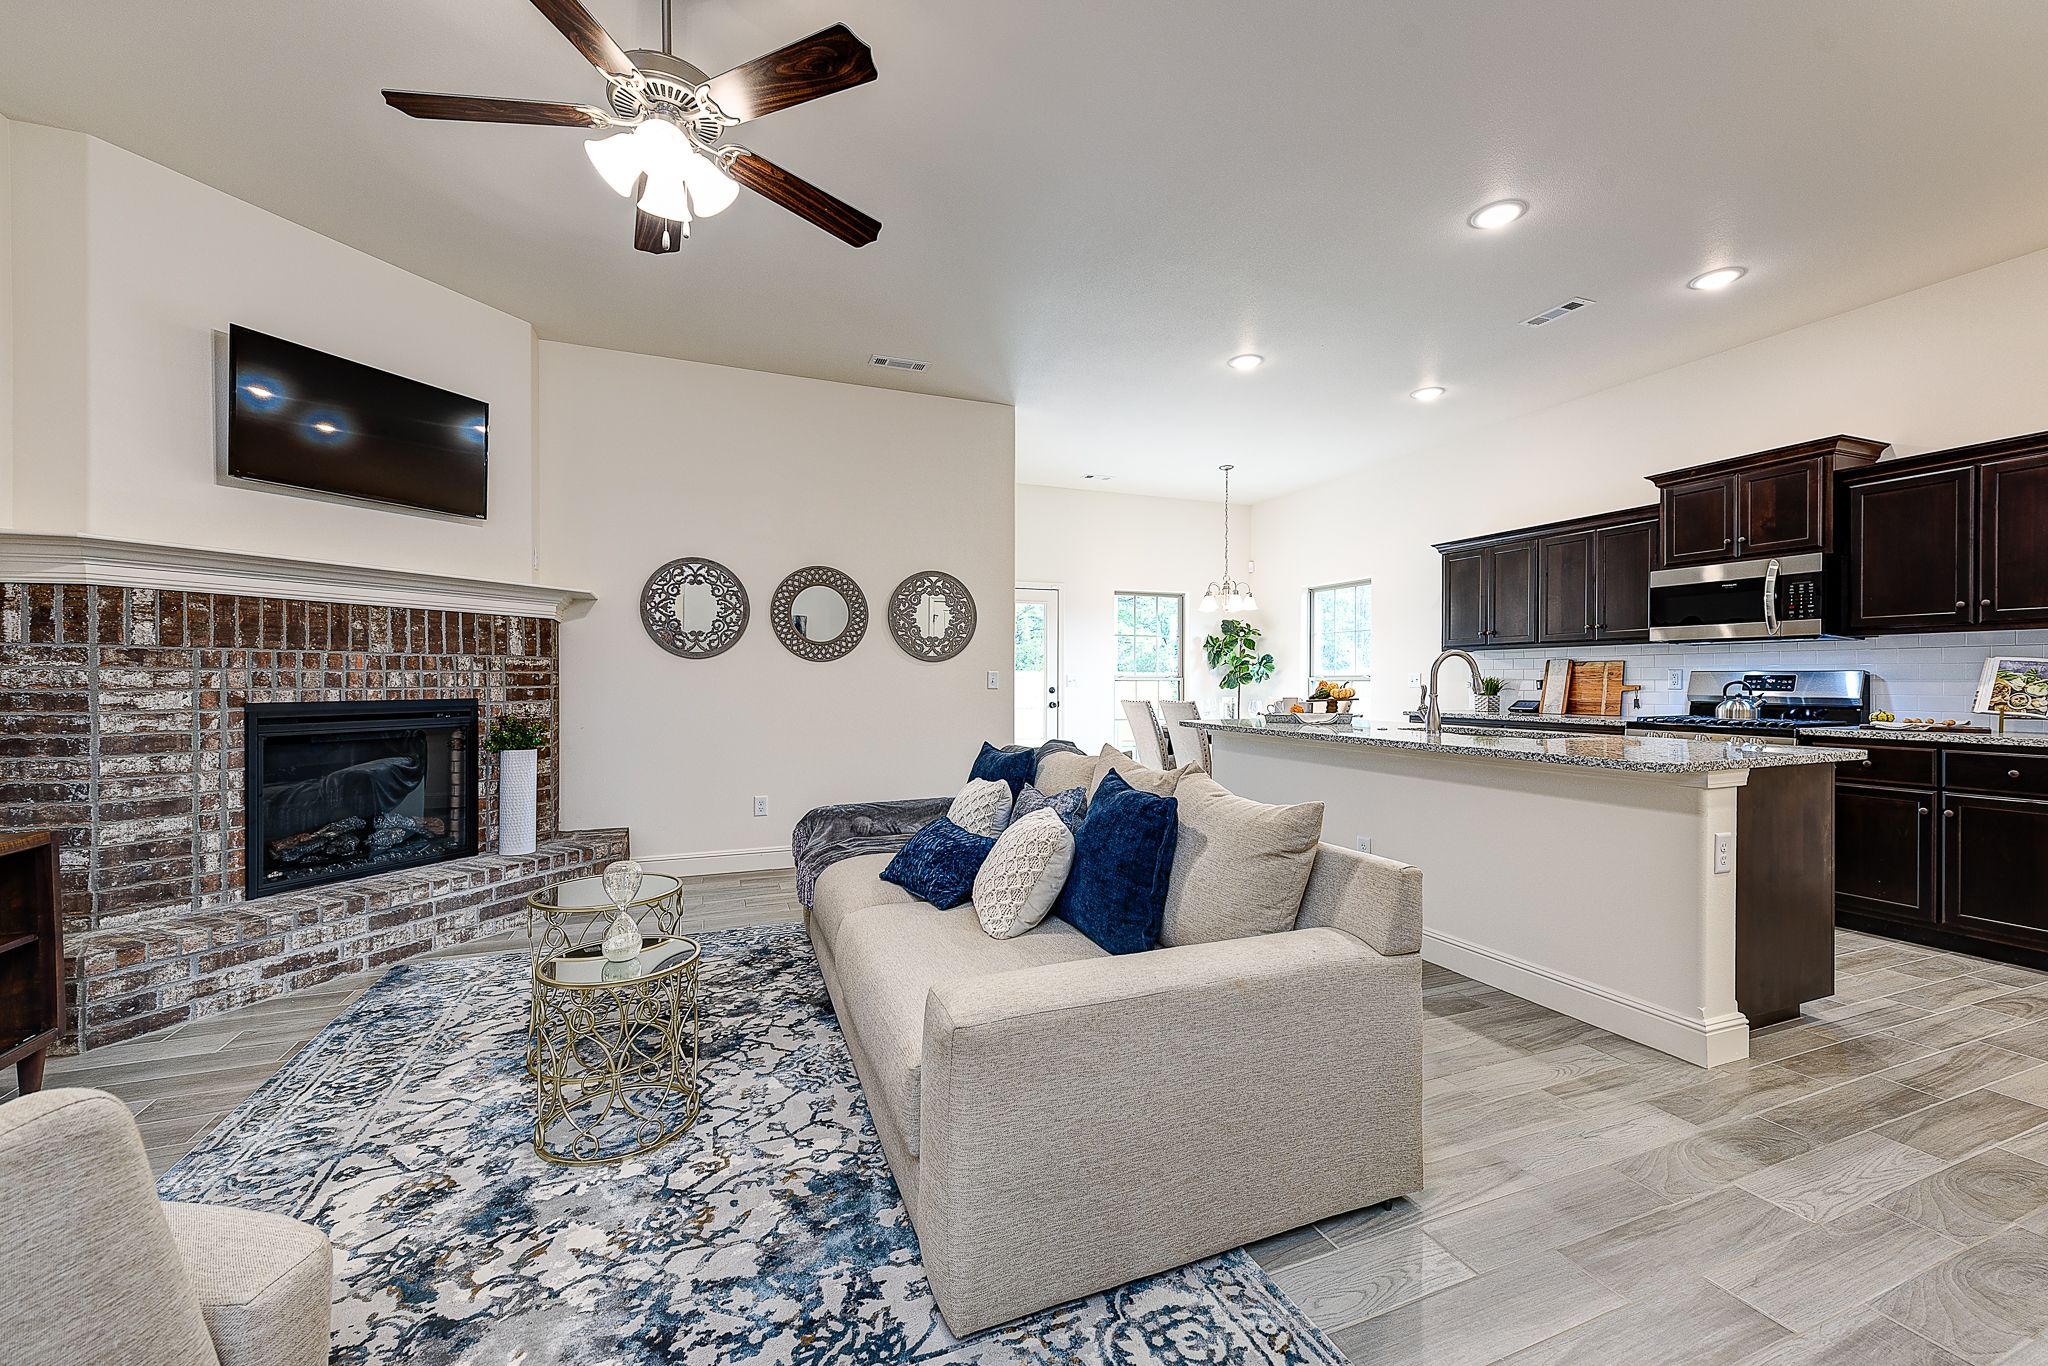 Living Area featured in the 1650KI Series By Schuber Mitchell Homes in Fayetteville, AR